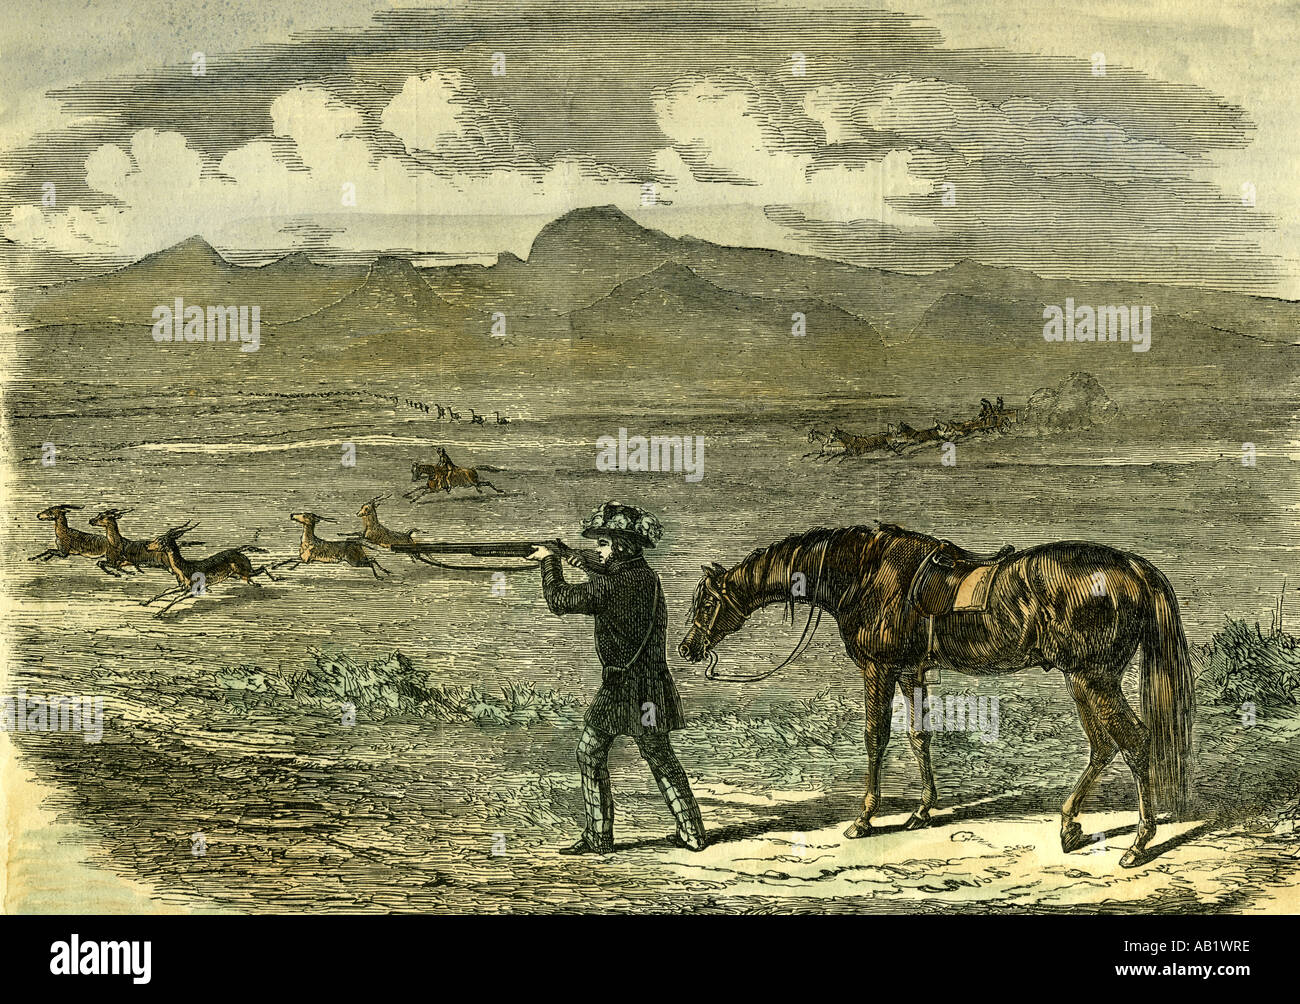 South Africa Hunting 1850 - Stock Image